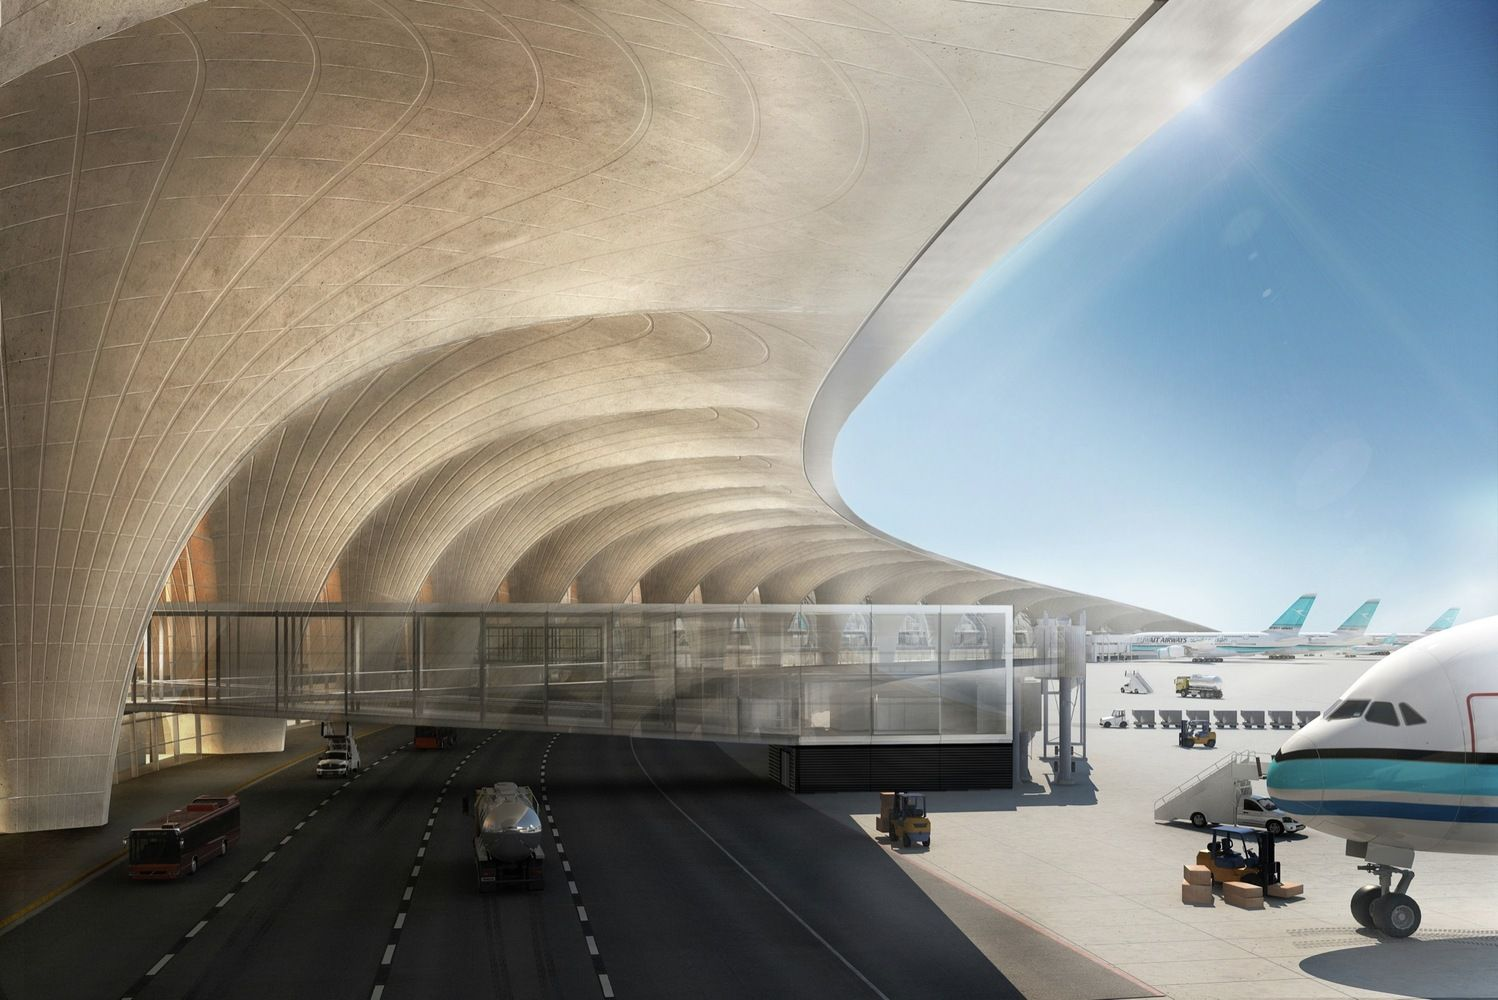 Gallery of Kuwait International Airport / Foster + Partners - 3